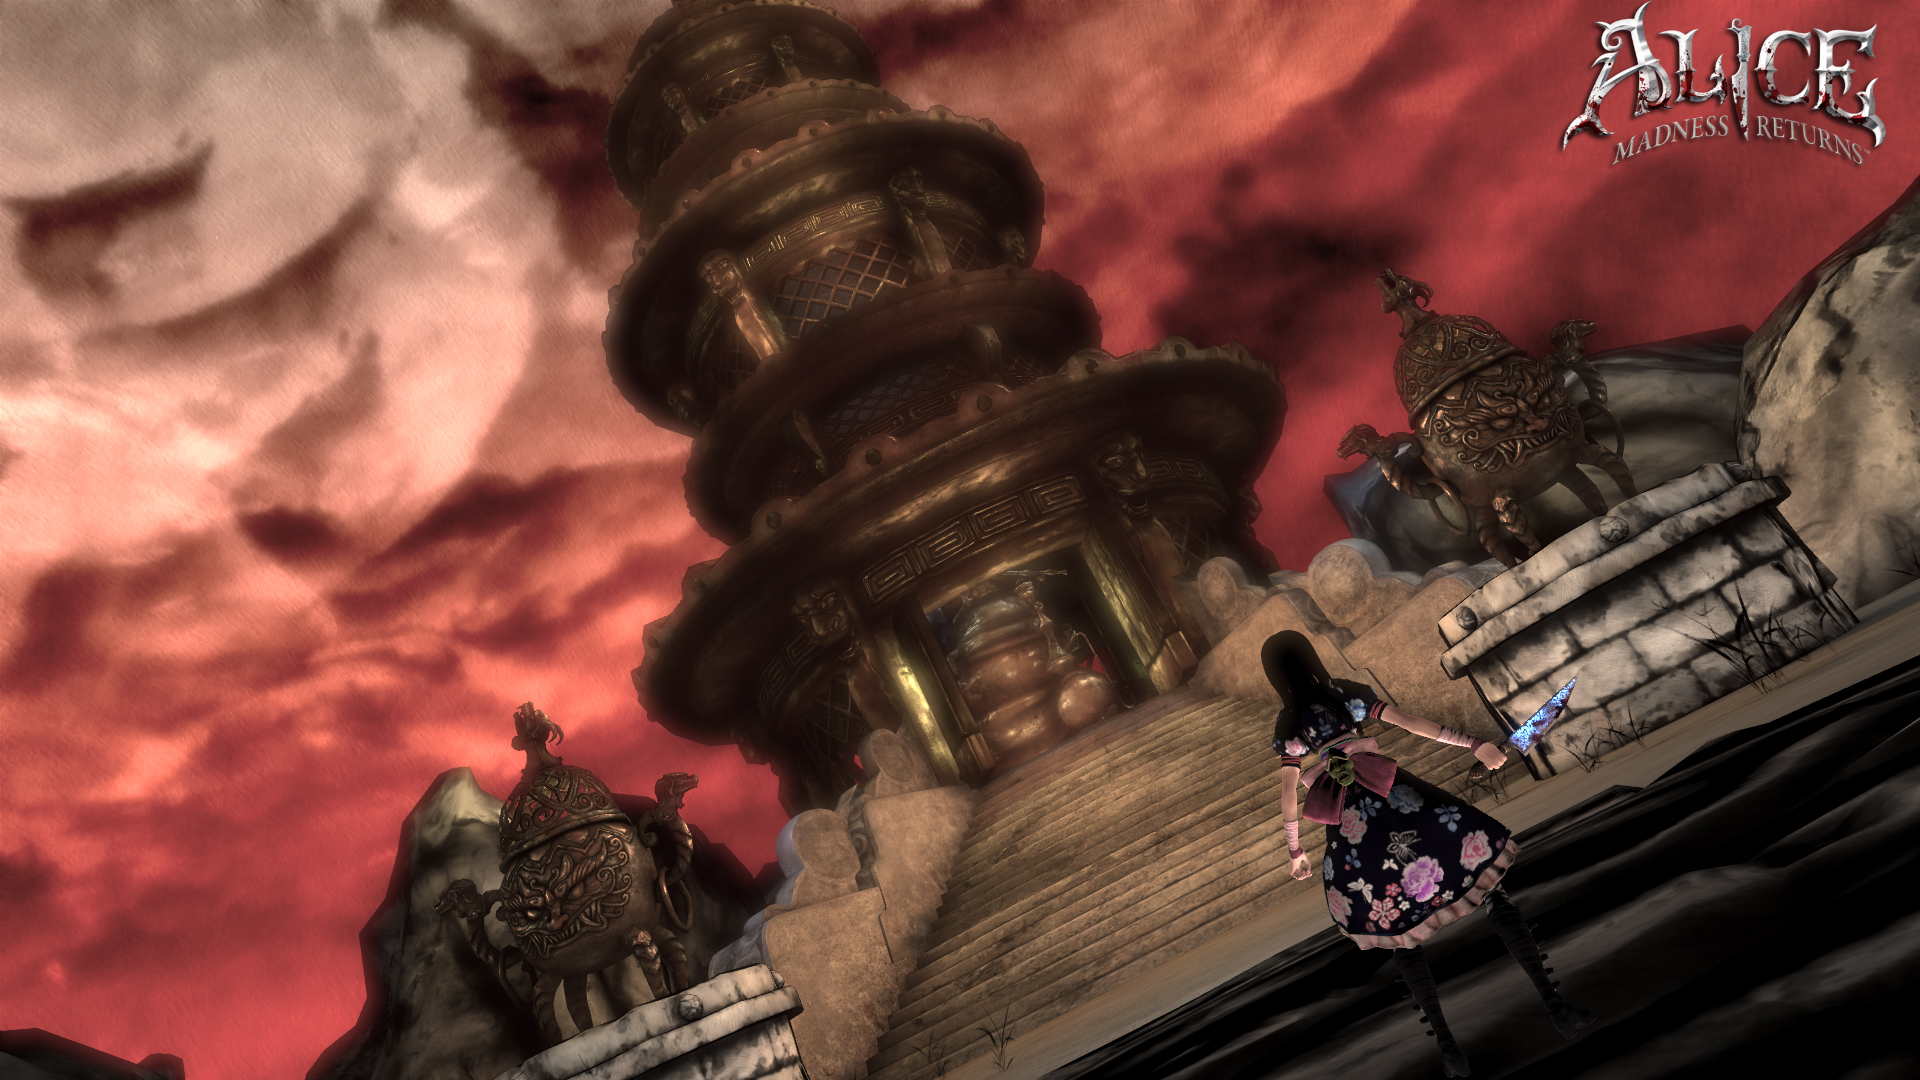 Media asset in full size related to 3dfxzone.it news item entitled as follows: Da Electronic Arts nuovi screenshots di Alice: Madness Returns   Image Name: news14971_5.jpg